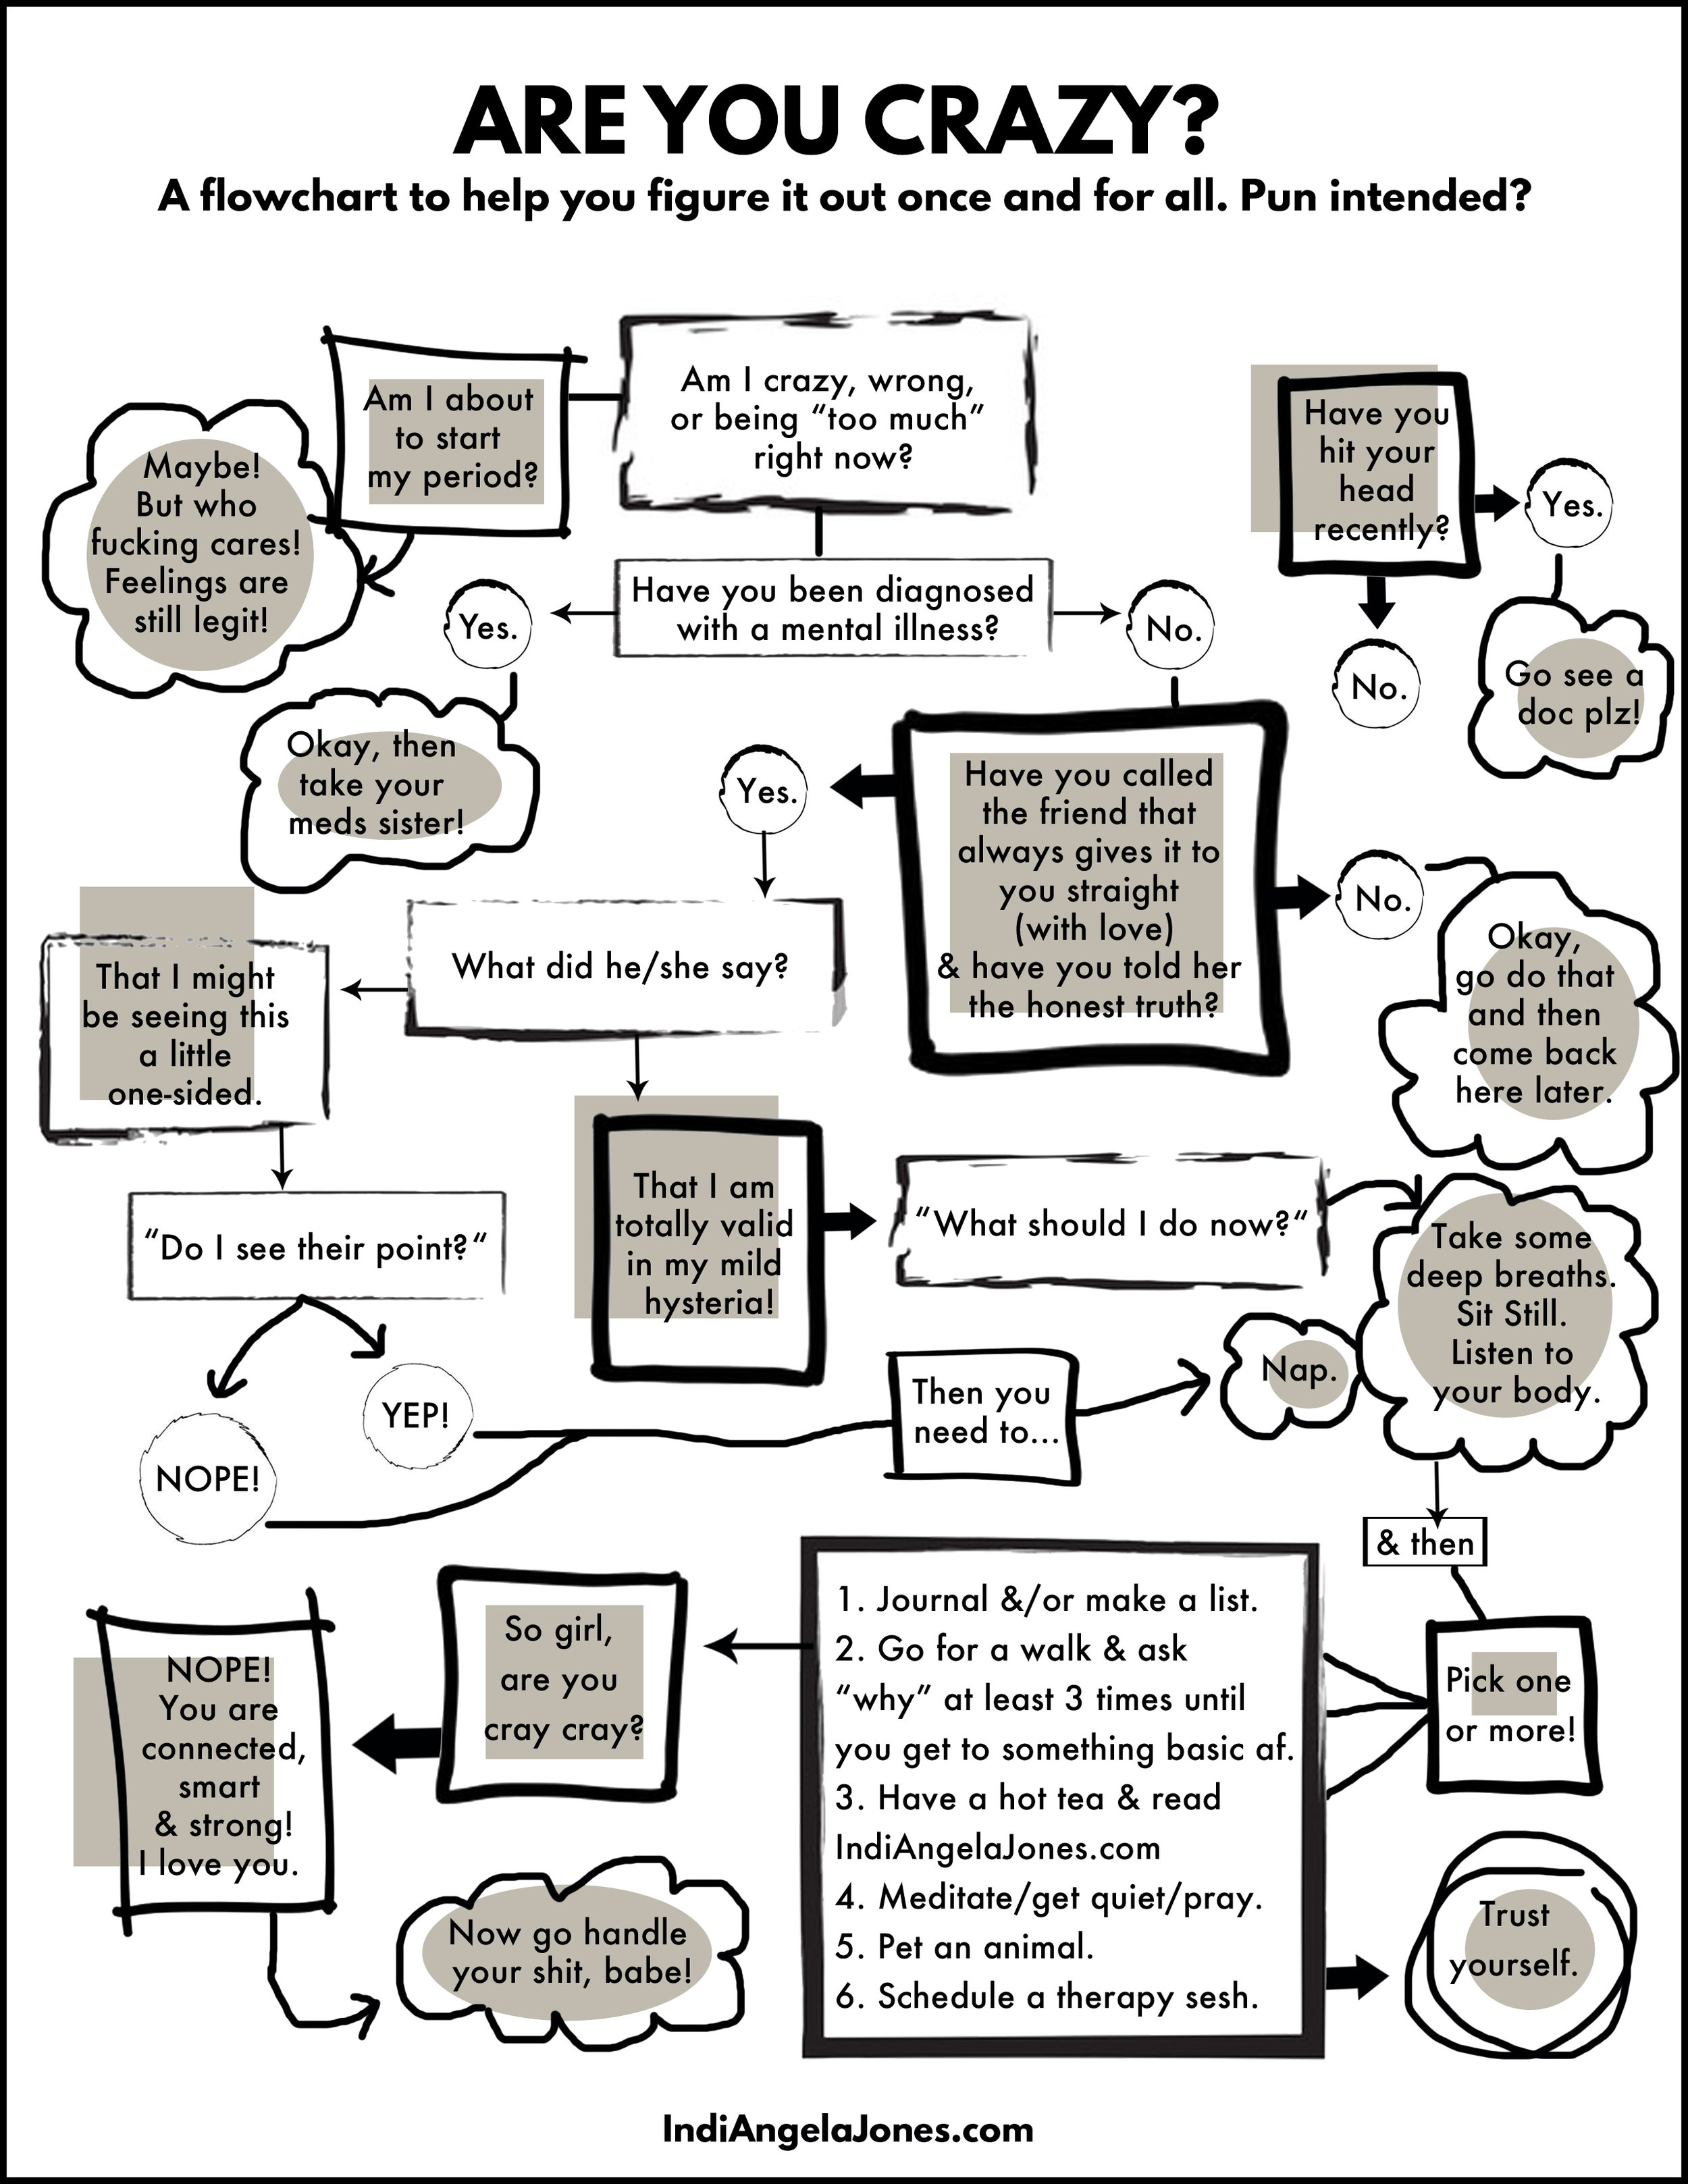 Are you crazy flowchart